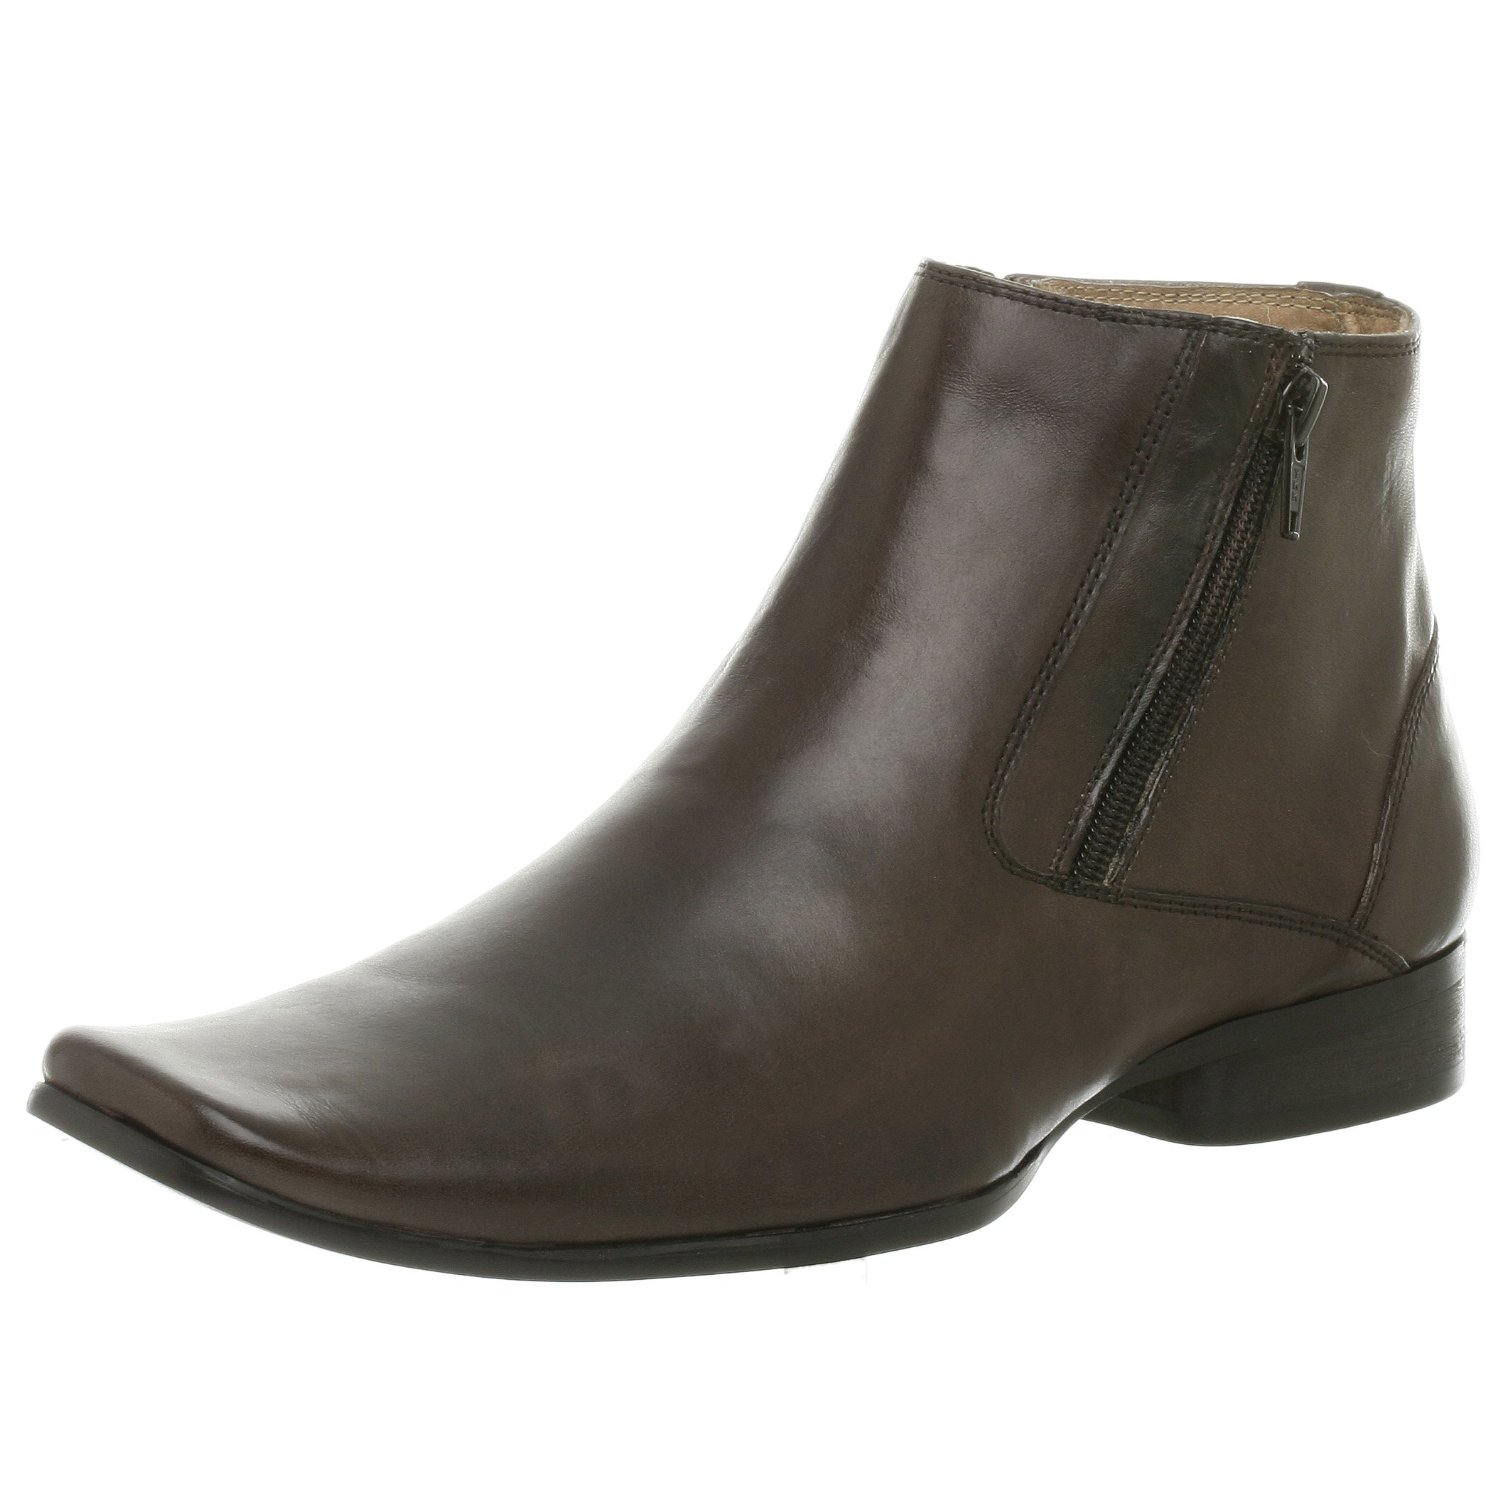 kenneth cole reaction kenneth cole reaction mens foot note